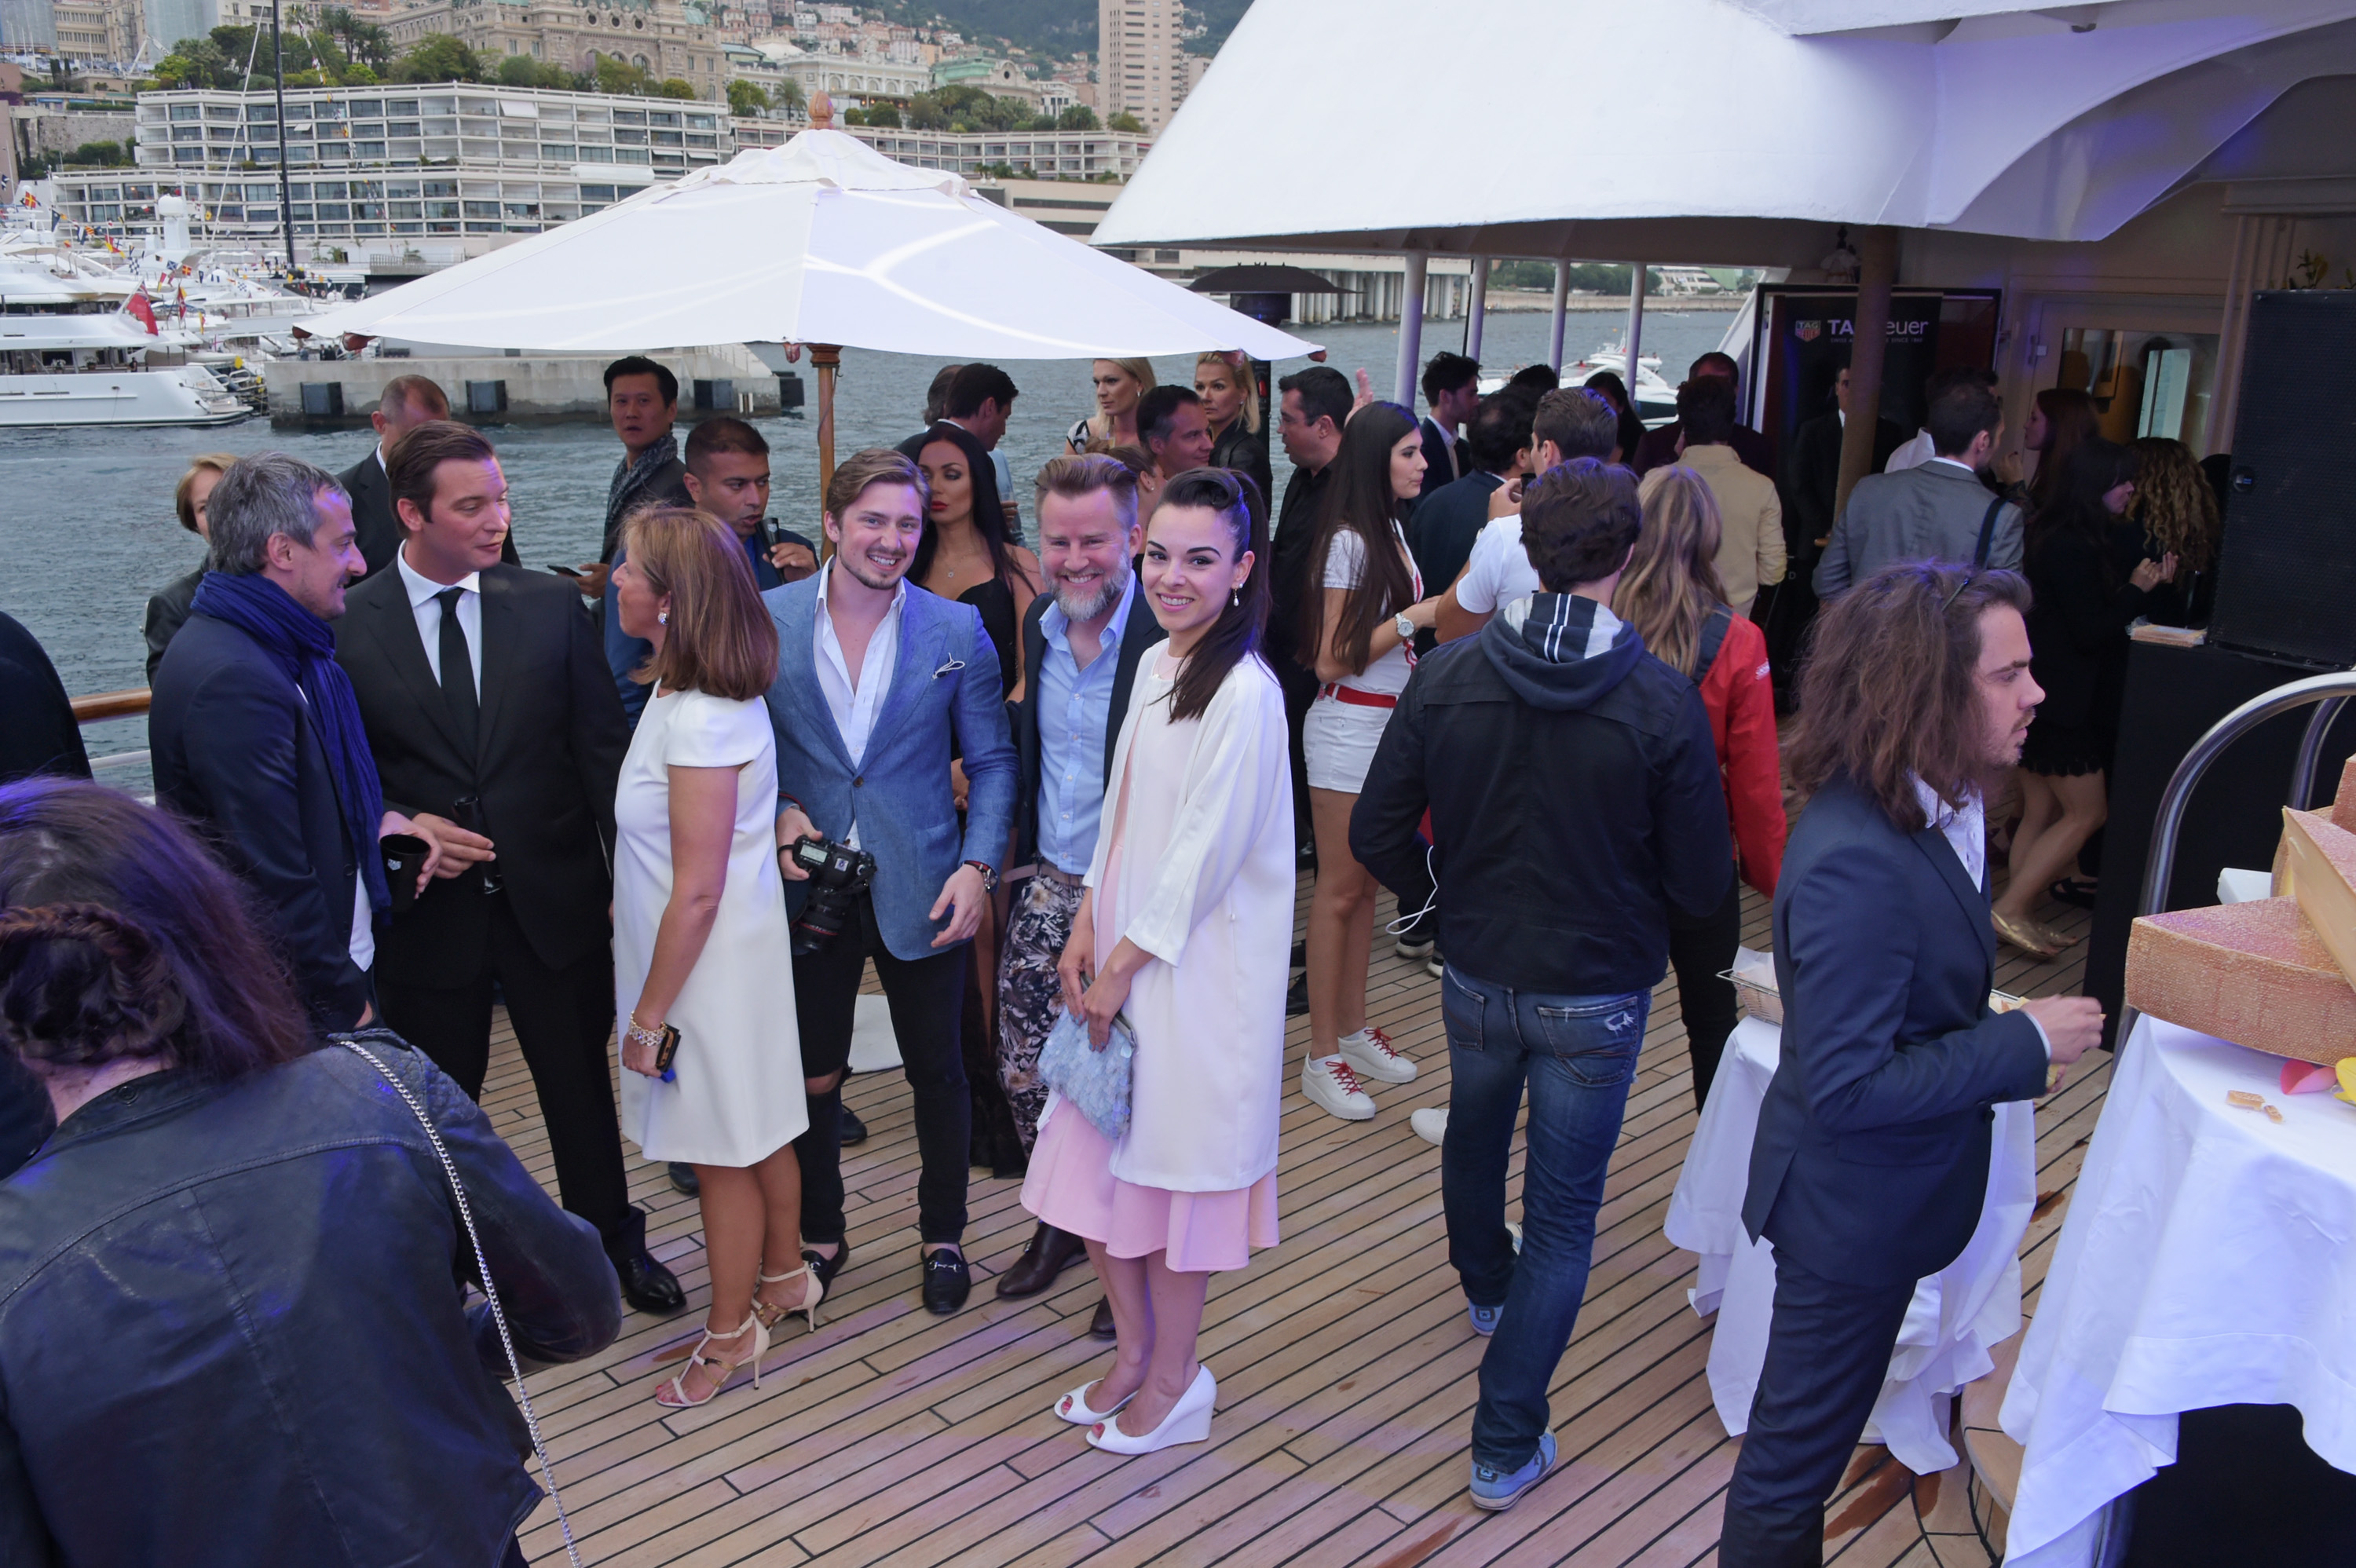 MONACO - MAY 23:  A general view of the atmosphere at the TAG Heuer Monaco Party on May 23, 2015 in Monaco, Monaco.  (Photo by David M. Benett/Getty Images for TAG Heuer)